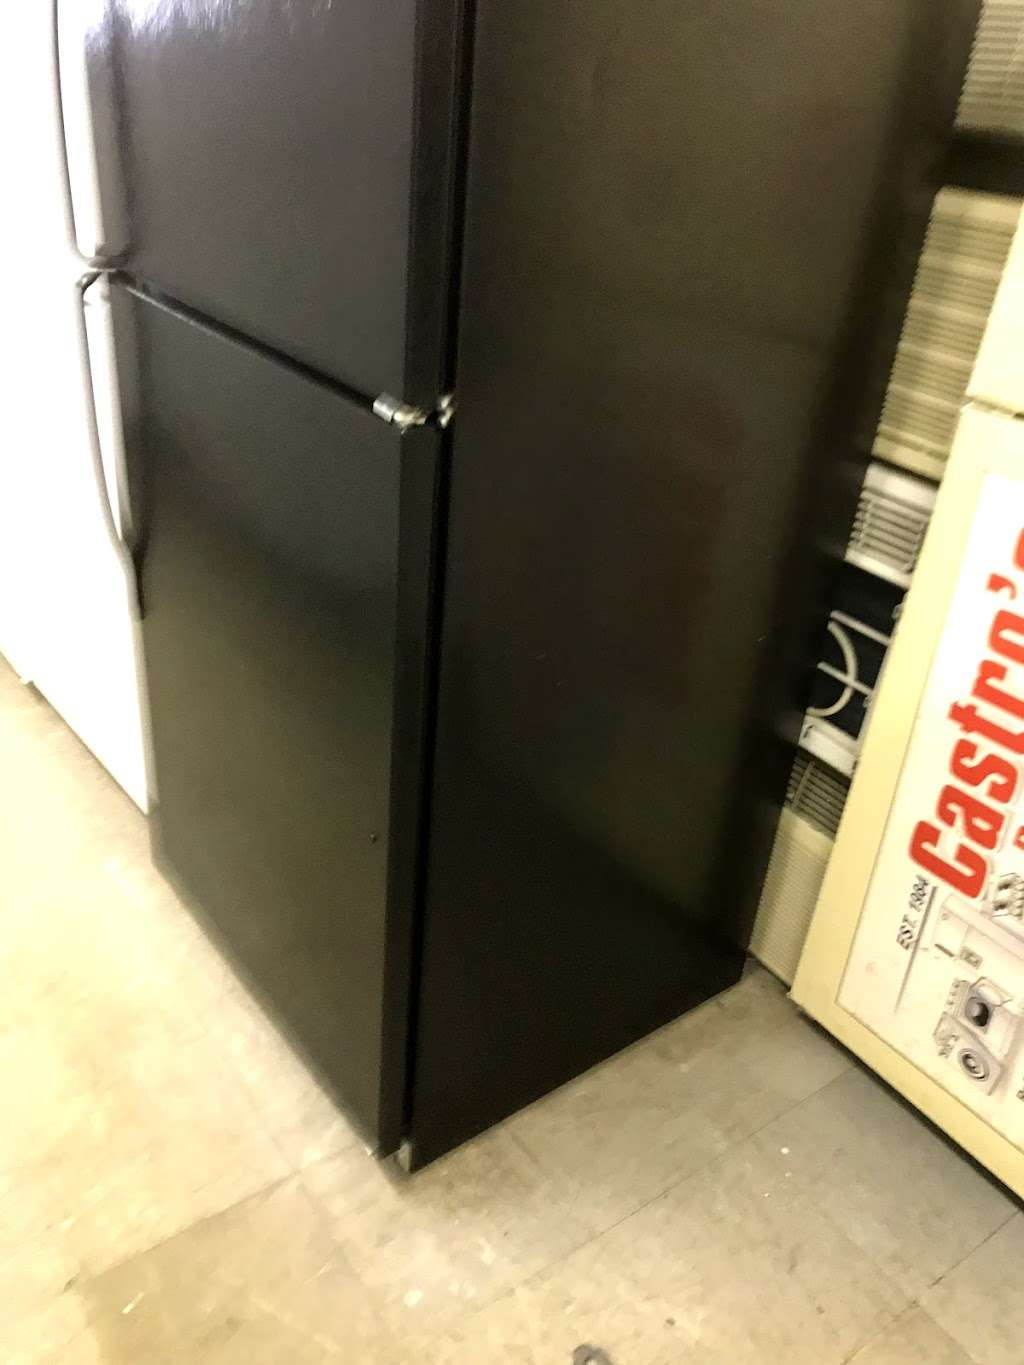 Castros Refrigeration - home goods store  | Photo 7 of 7 | Address: 226 Old Bergen Rd, Jersey City, NJ 07305, USA | Phone: (201) 435-0492